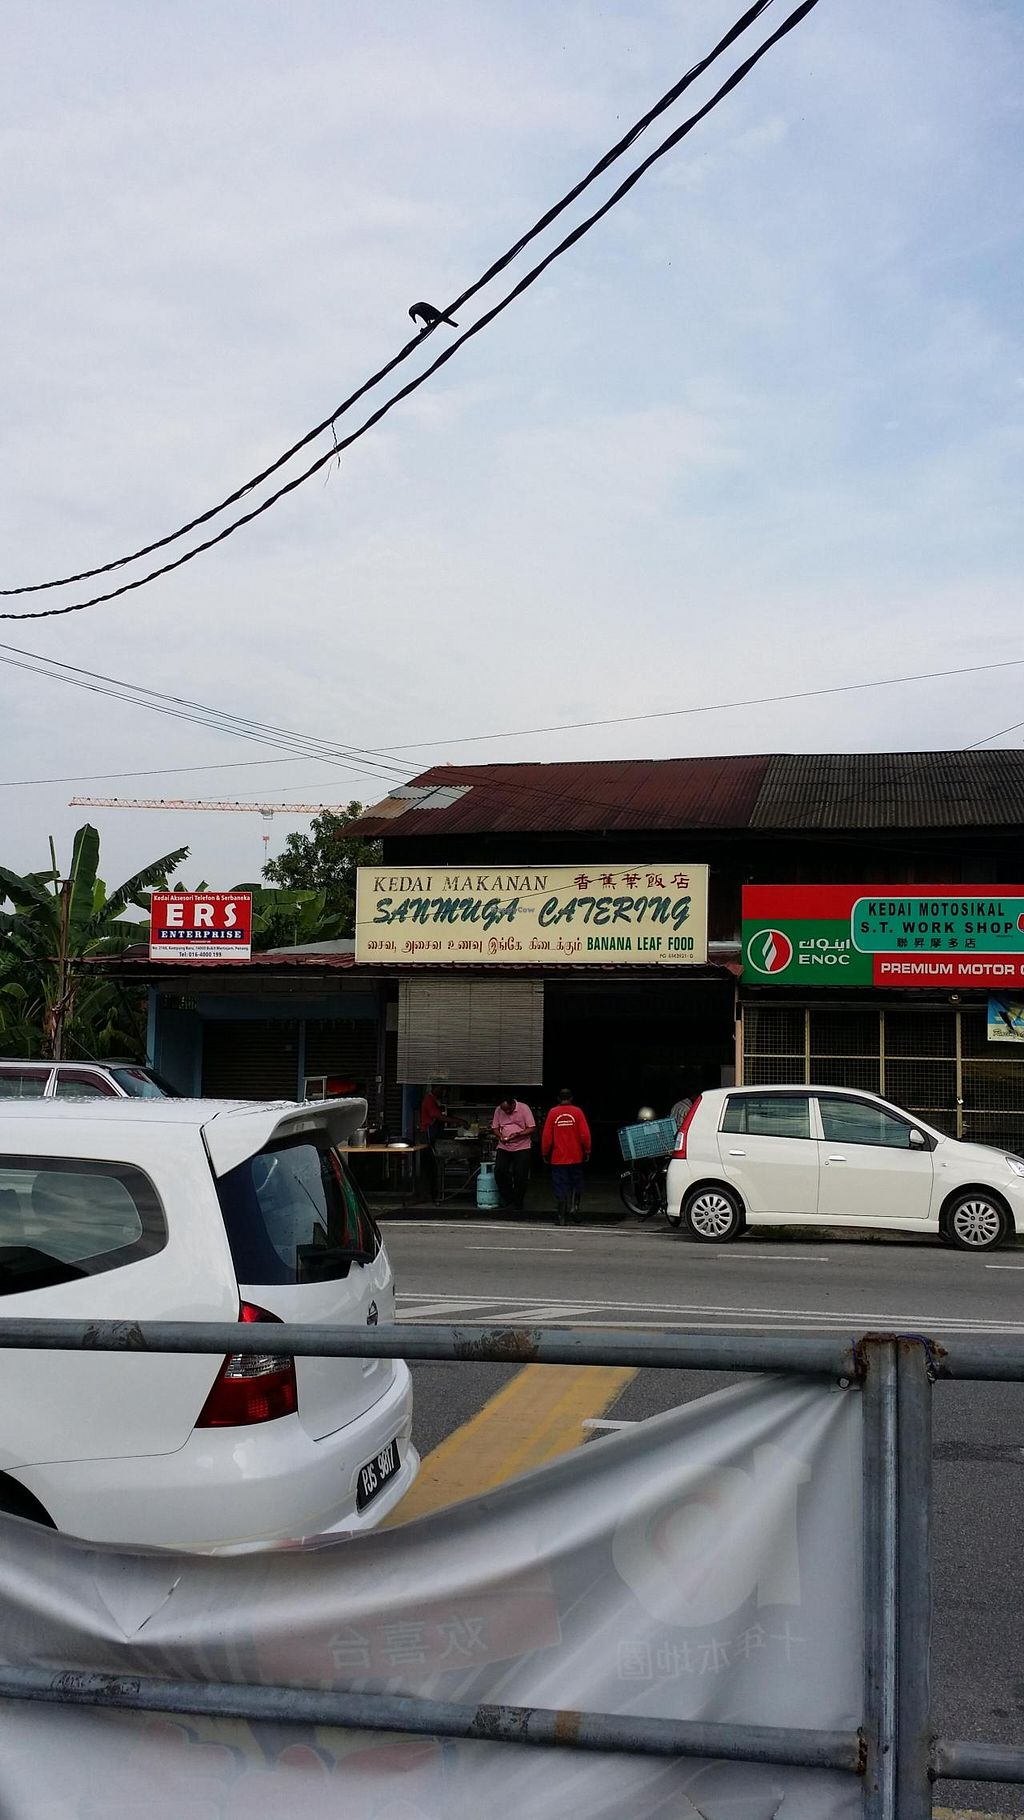 "Photo of Kedai Makanan Sanmuga Catering  by <a href=""/members/profile/walter007"">walter007</a> <br/>Shop <br/> April 29, 2014  - <a href='/contact/abuse/image/46916/68918'>Report</a>"